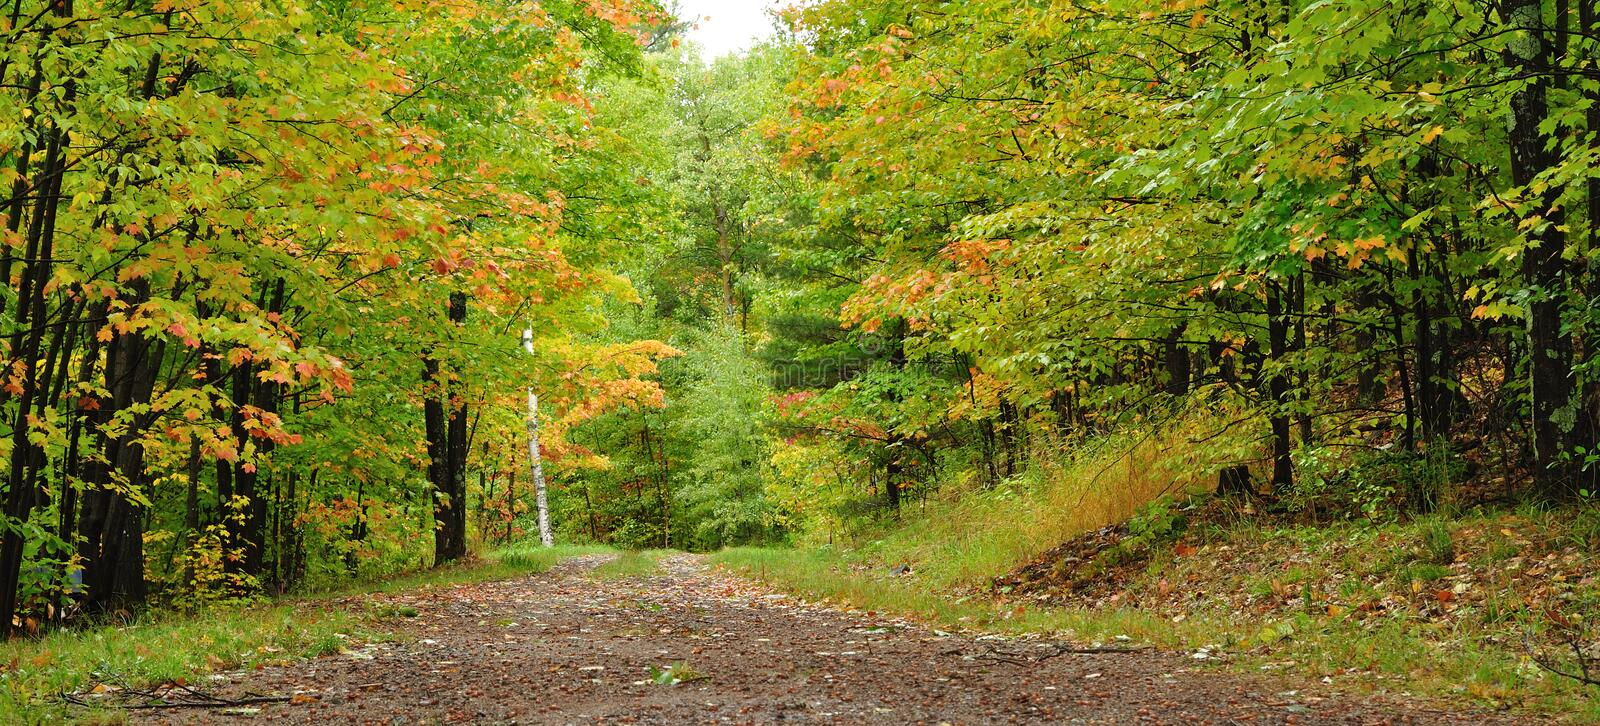 A Road Through the Woods stock photography